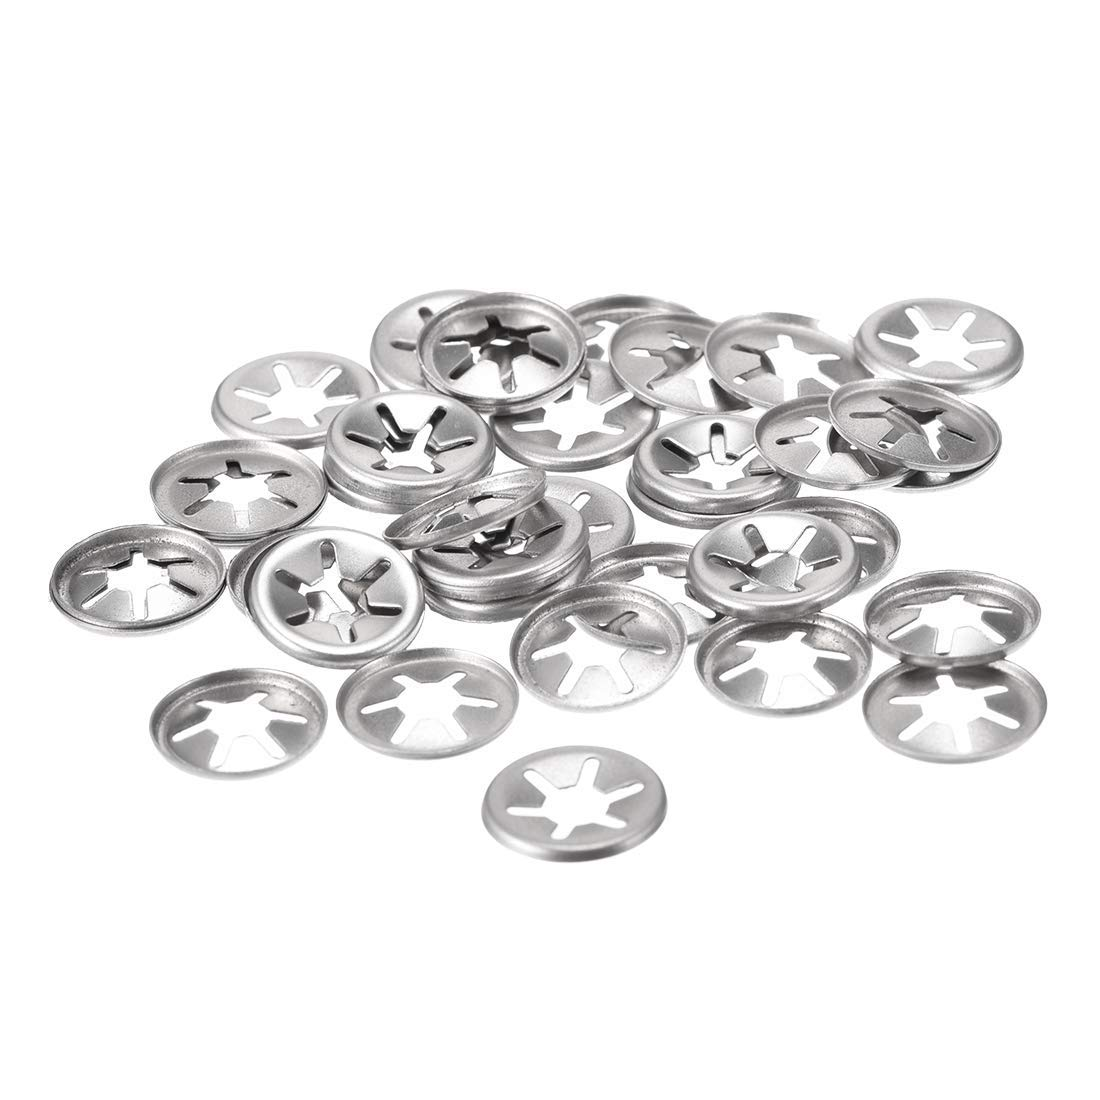 M6 Starlock Washer 5.1mm I.D 15 mm Outer Diameter Internal Tooth Lock washers Thrust Lock Speed Clip 304 Stainless Steel 40 Pieces